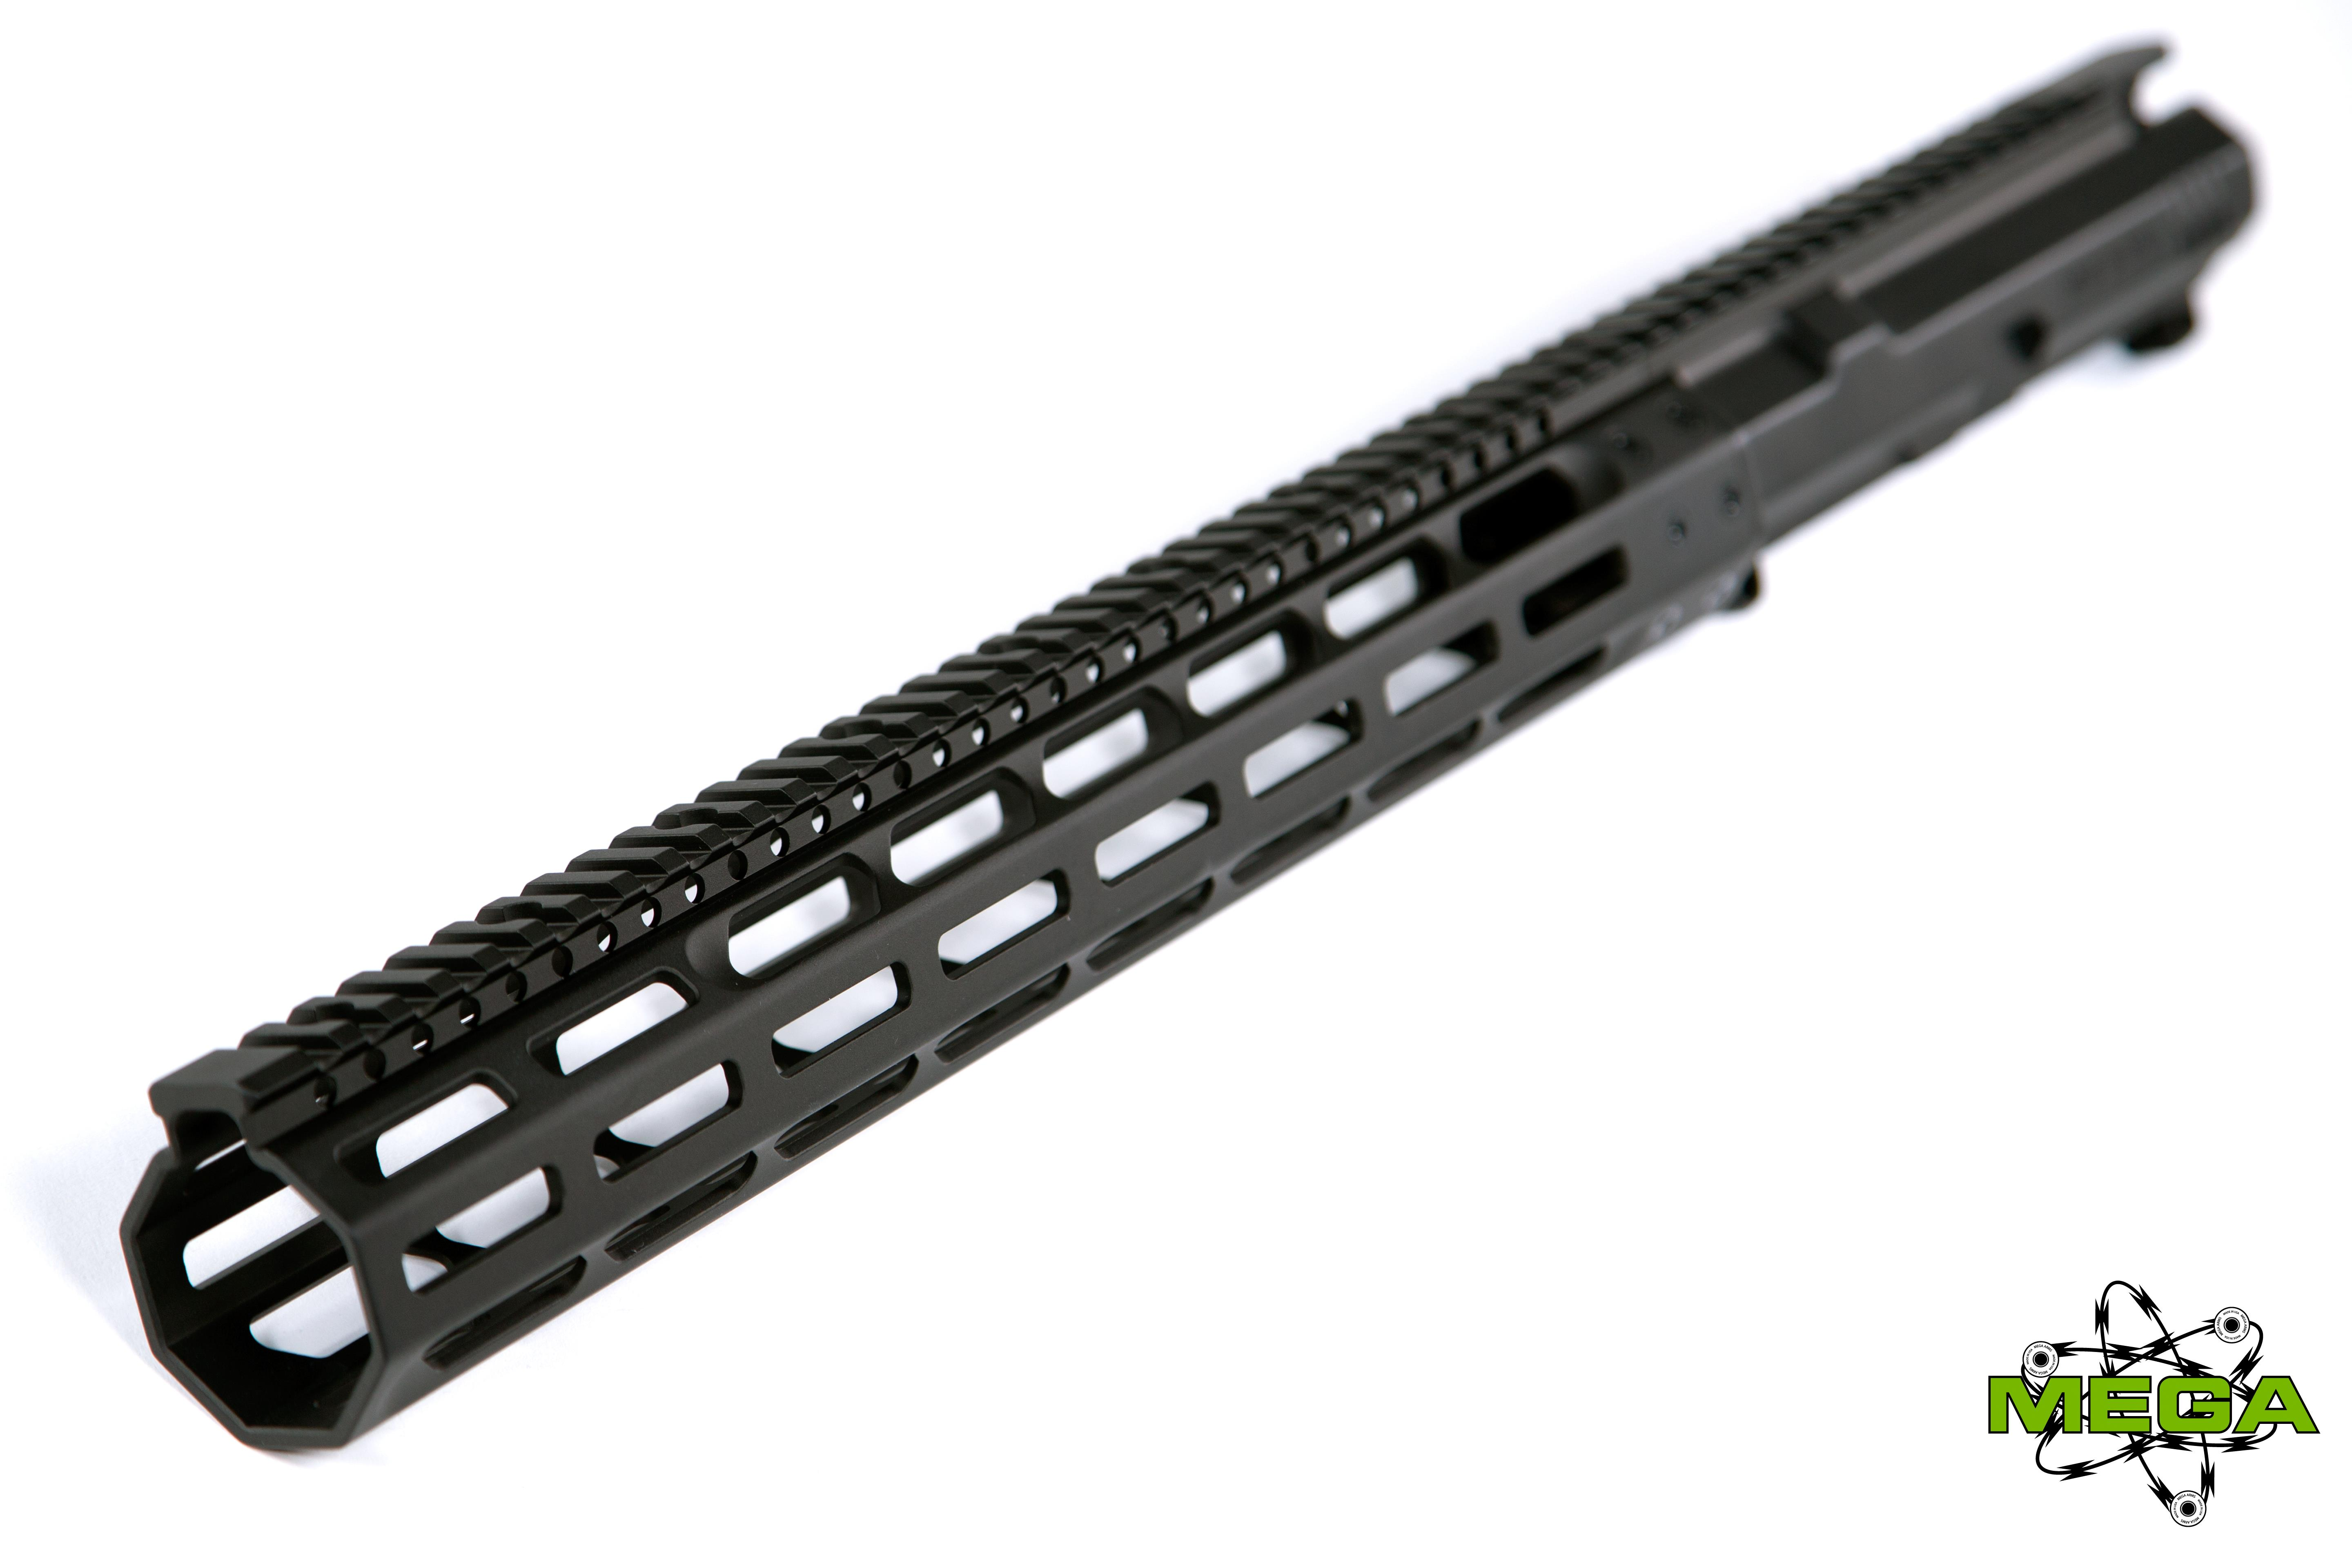 Mega Arms AR15 M-LOK Extended Rifle Length Upper  Non-Guns > Gun Parts > M16-AR15 > Upper Only